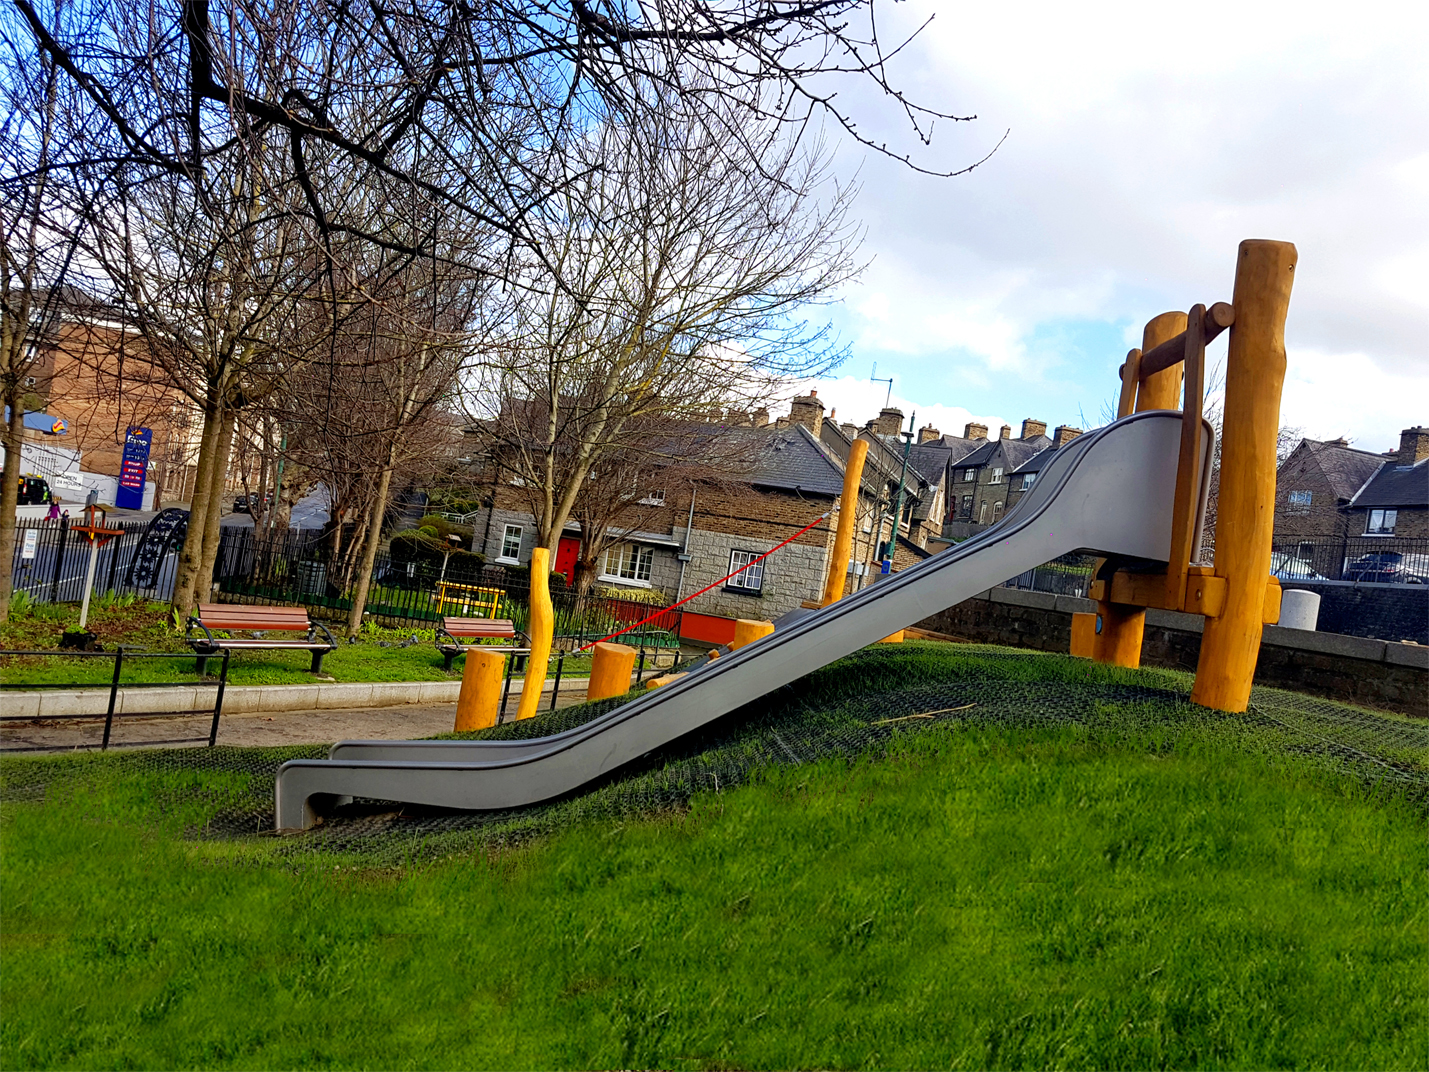 Playground for Mount Brown in Dublin by CPCL 01.2017